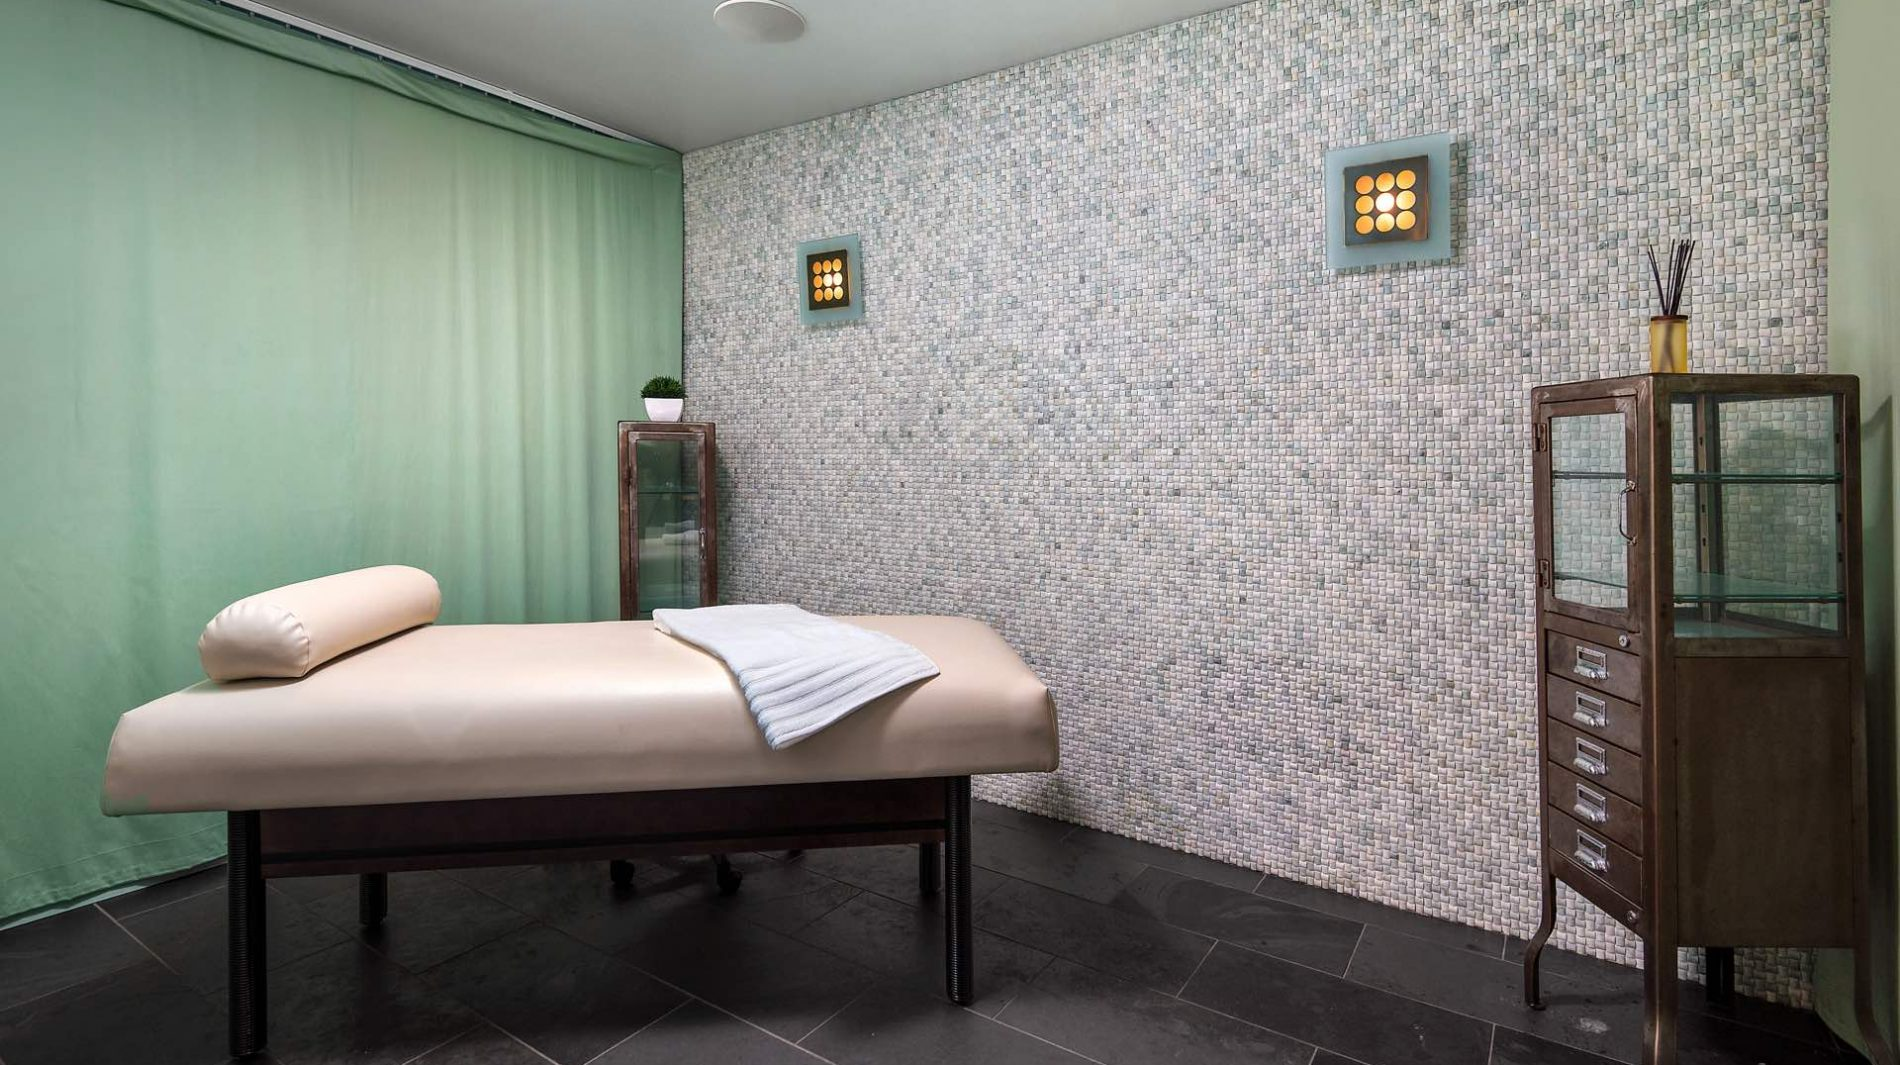 Recharge in our thoughfully-designed spa amenity spaces, including a private massage room.